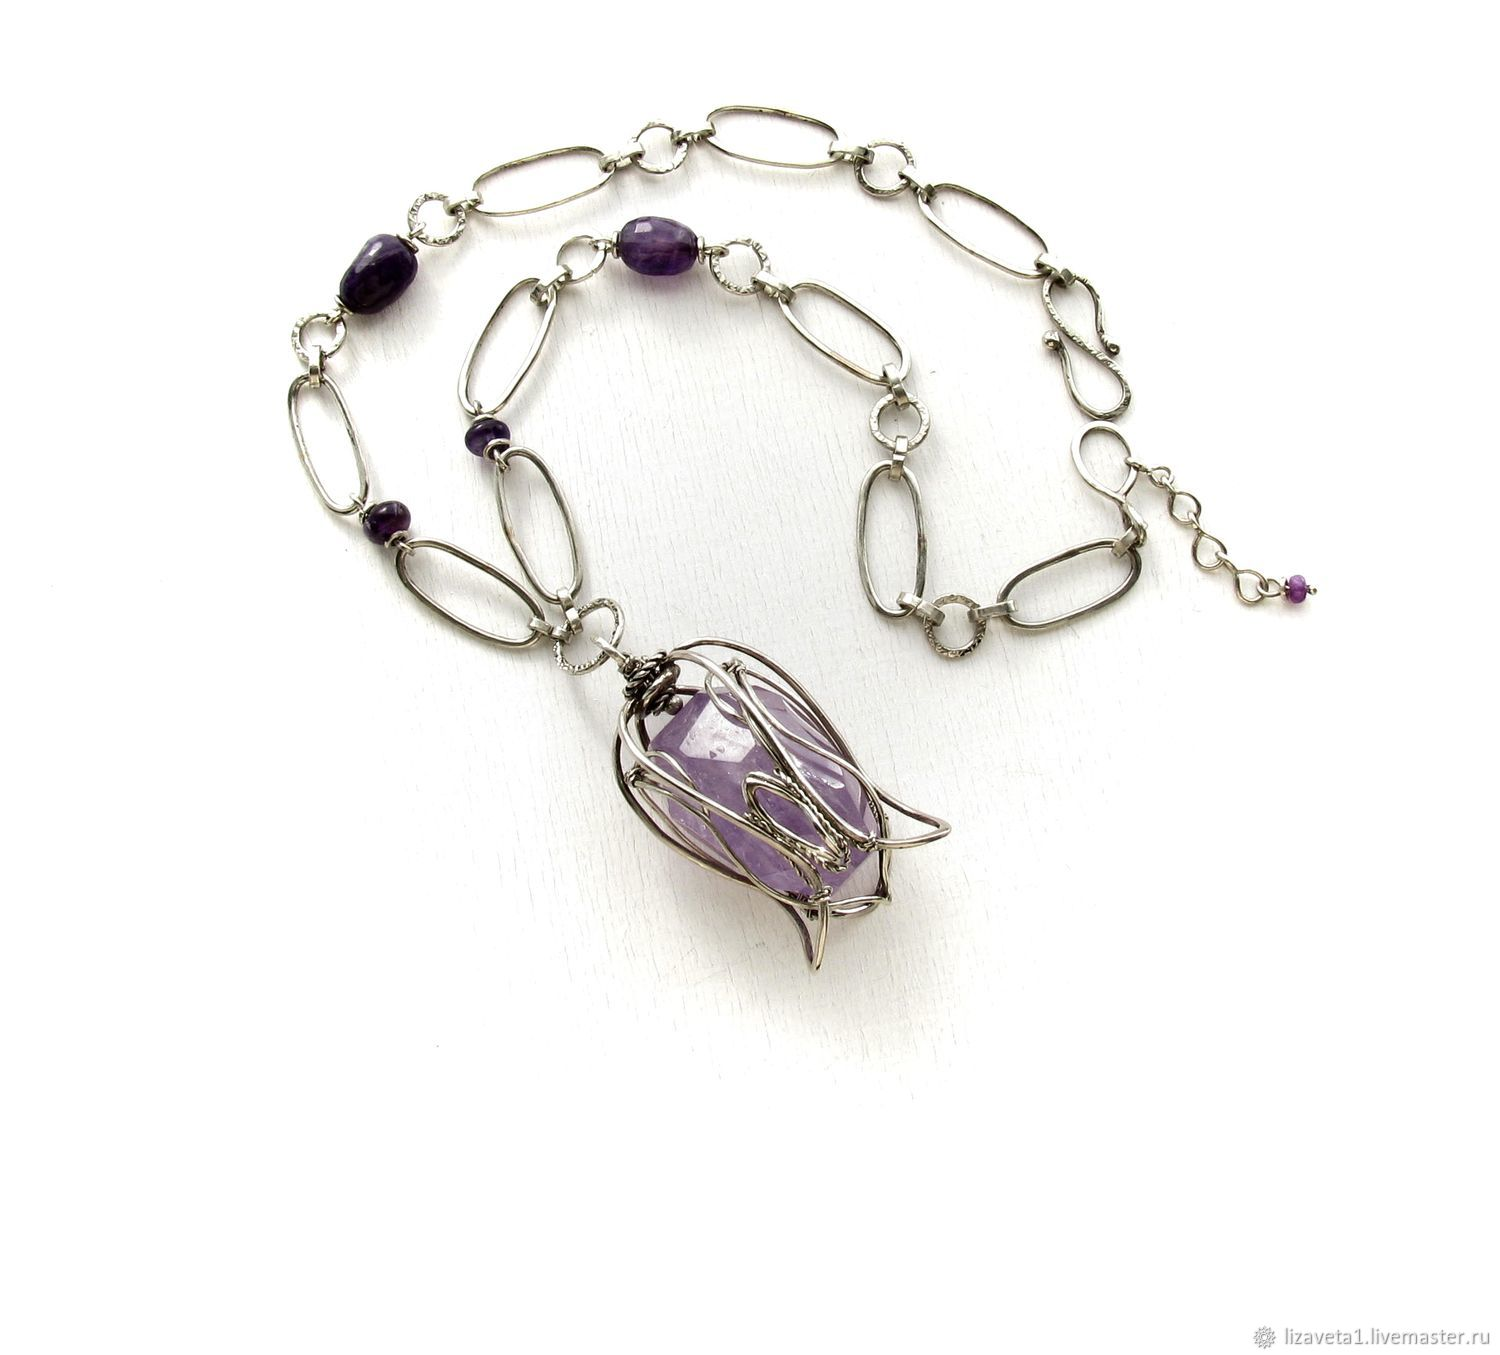 Tulip necklace with amethyst purple necklace purple flower decoration, Necklace, Moscow,  Фото №1